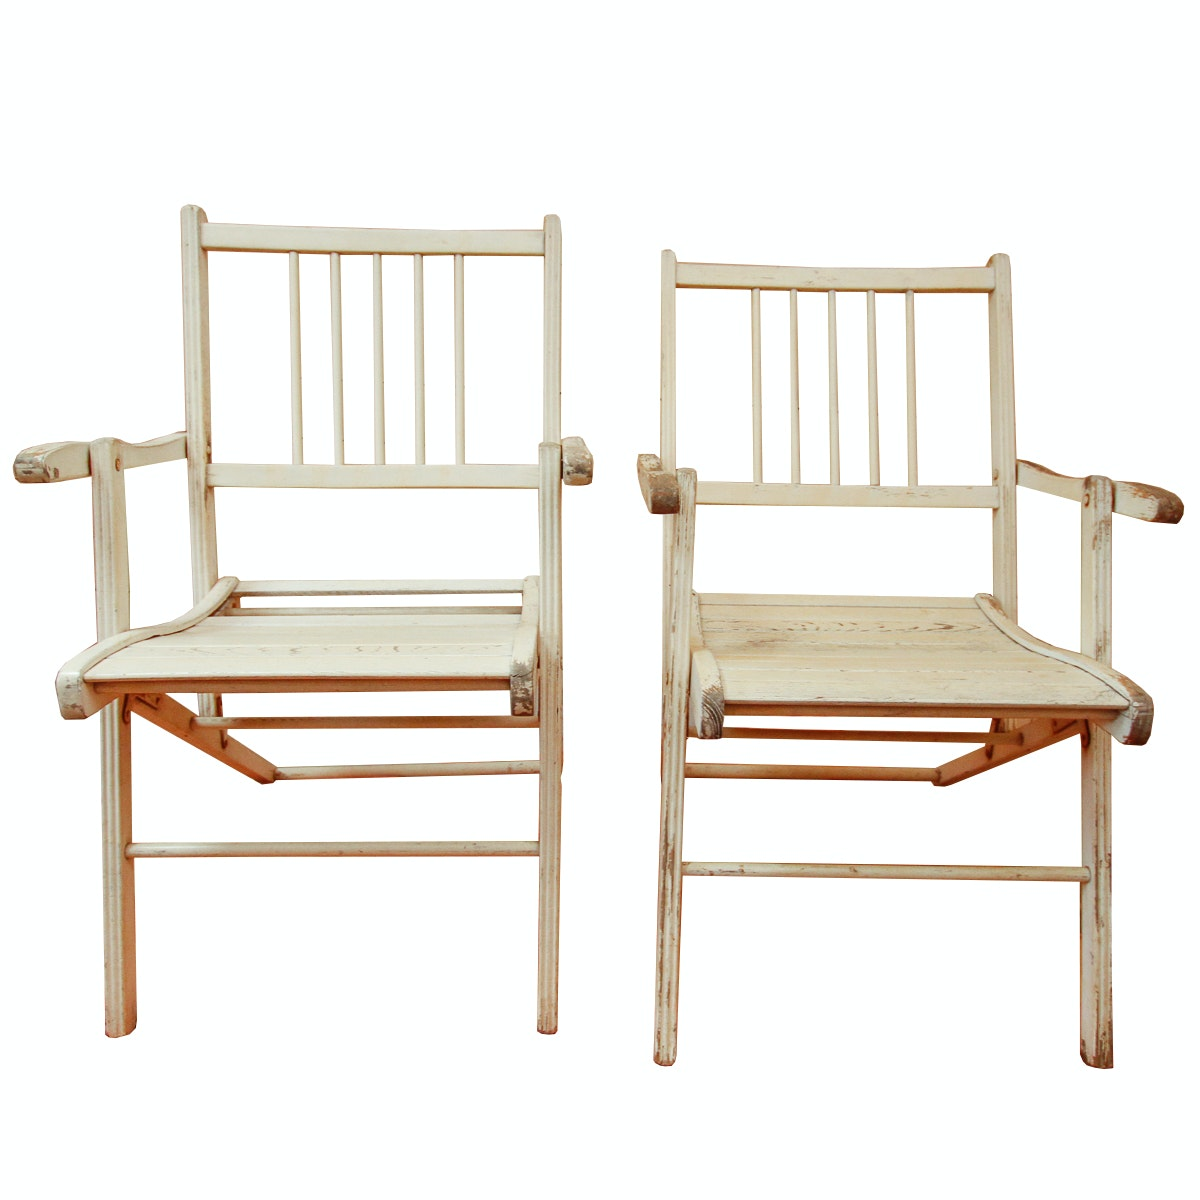 Pair Of Vintage Folding Chairs By Gold Medal Folding Furniture Company ...